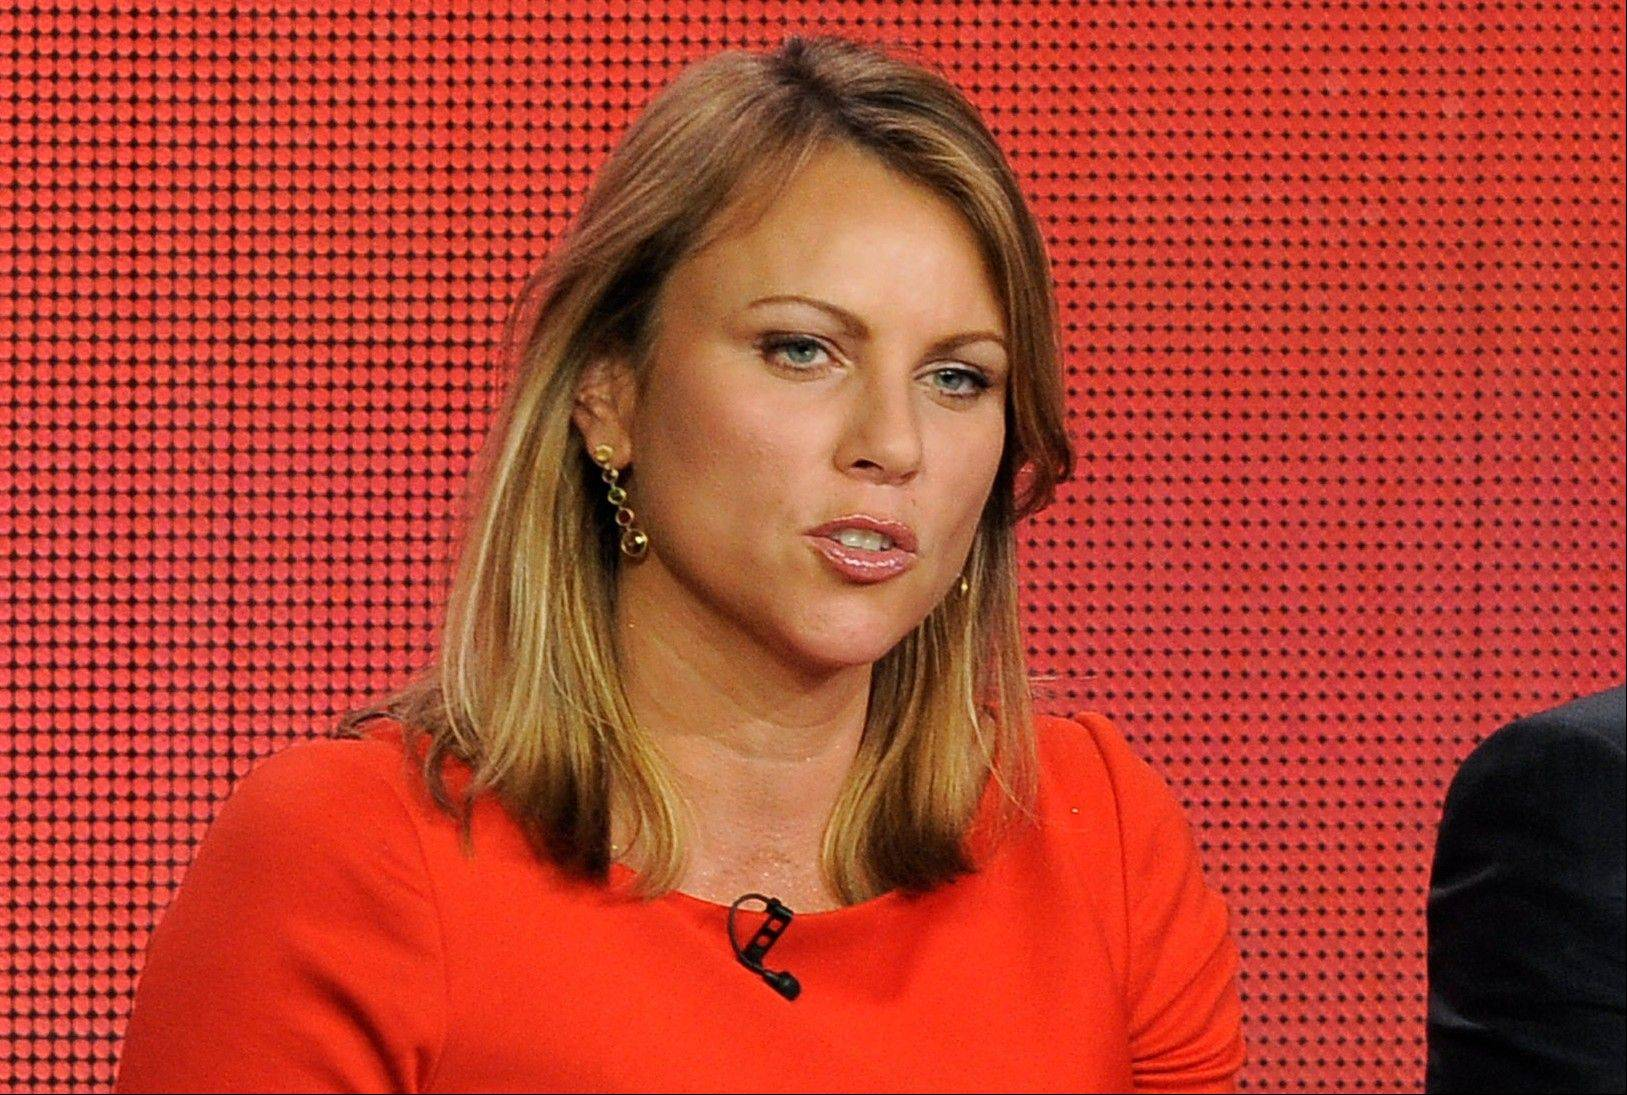 CBS says it was misled by a �60 Minutes� source who claimed he was on the scene of a 2012 attack on the U.S. mission in Benghazi, Libya, when it turns out he was not. Lara Logan, who reported the story, apologized for the network during Sunday�s show.